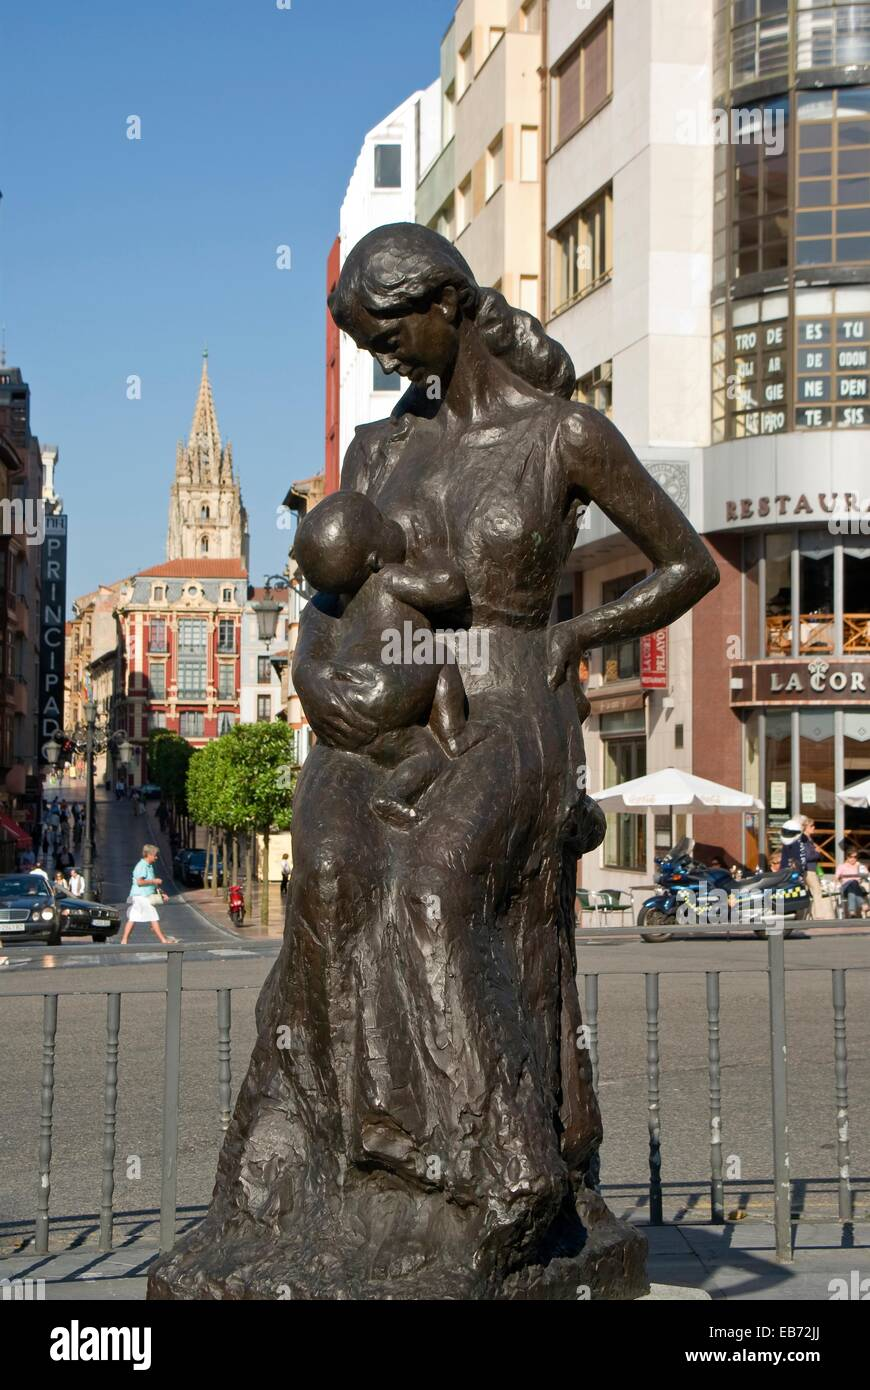 Monument to motherhood, Oviedo, Asturias, Spain. - Stock Image